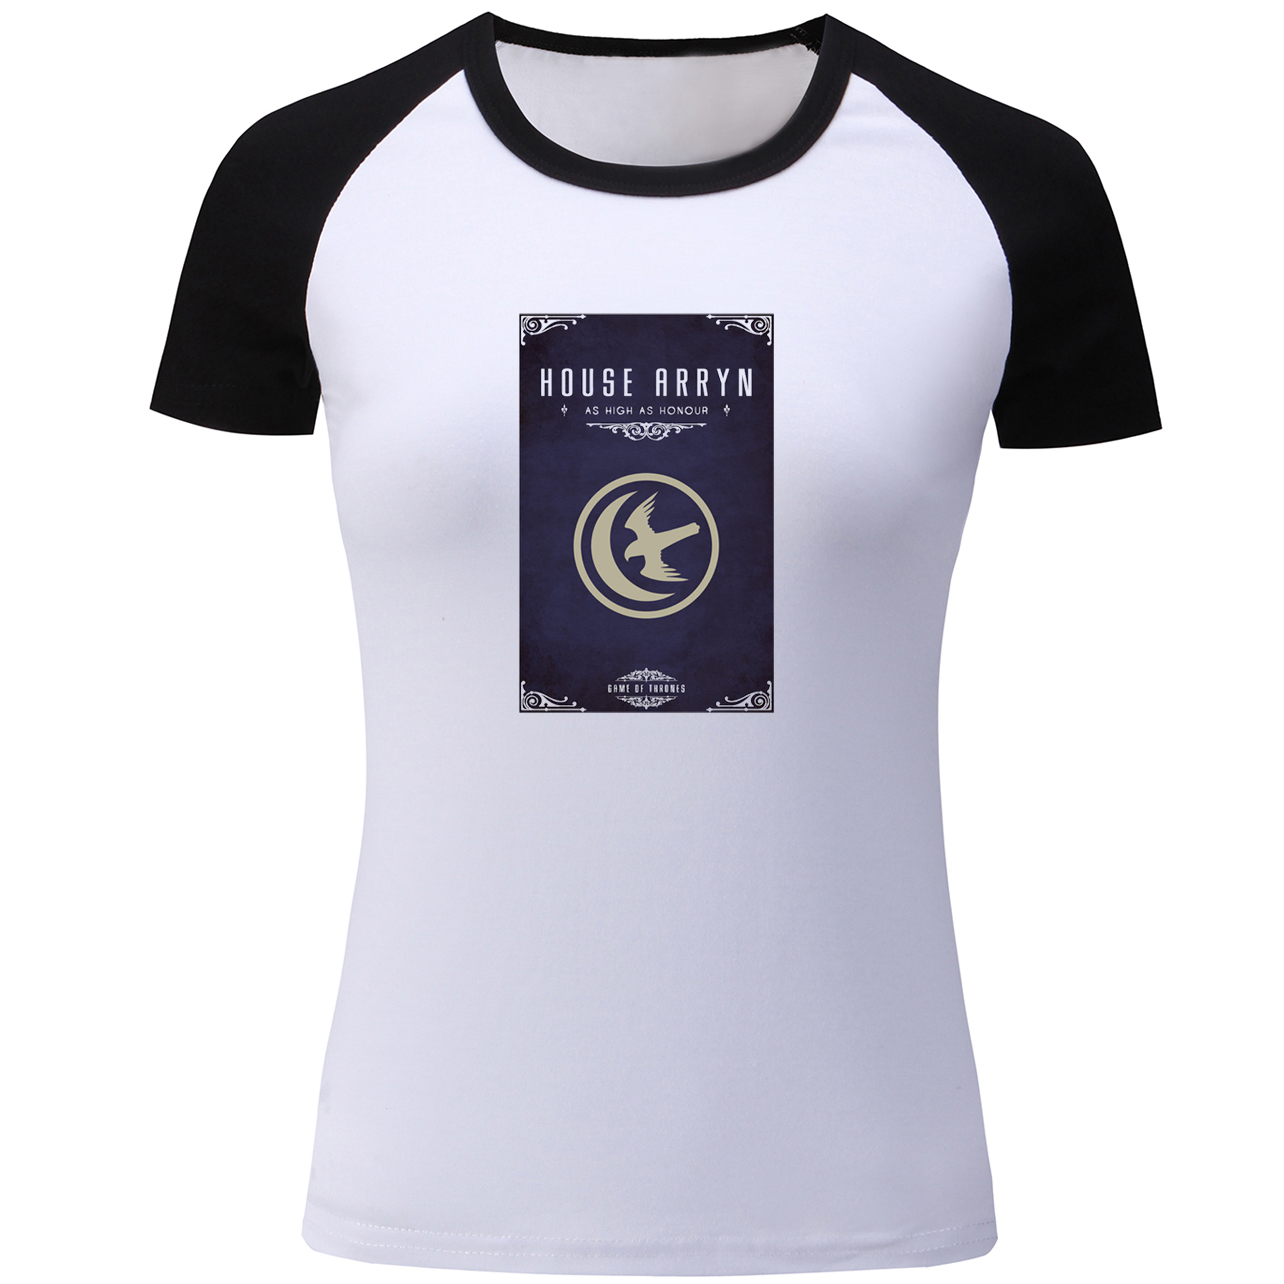 db658e7b US $9.17 46% OFF|Game of Thrones House Arryn of the Eyrie As High as Honor  Symbol T Shirt Women Patchwork Short Girls Tshirt Holiday T shirt Tops-in  ...